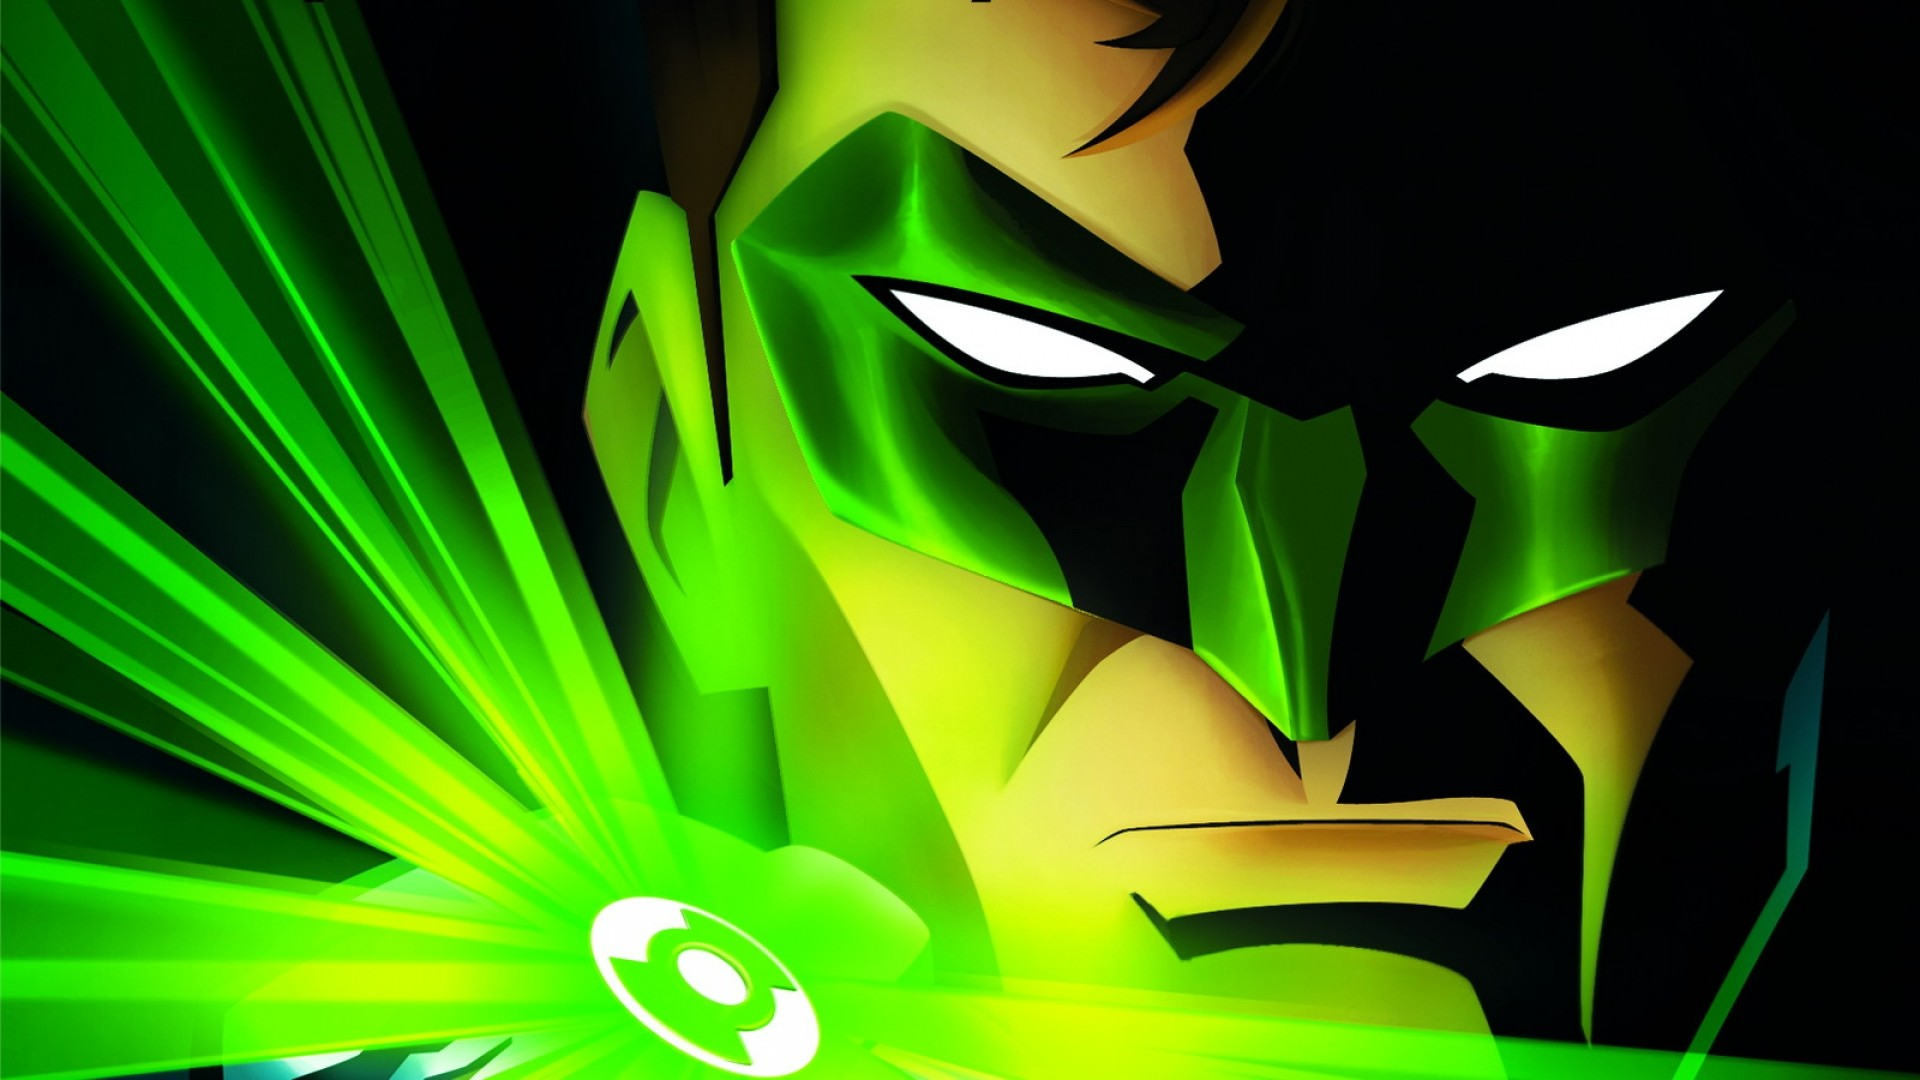 Hd Superhero Wallpapers For Pc Green Lantern Oath Wallpaper 68 Images